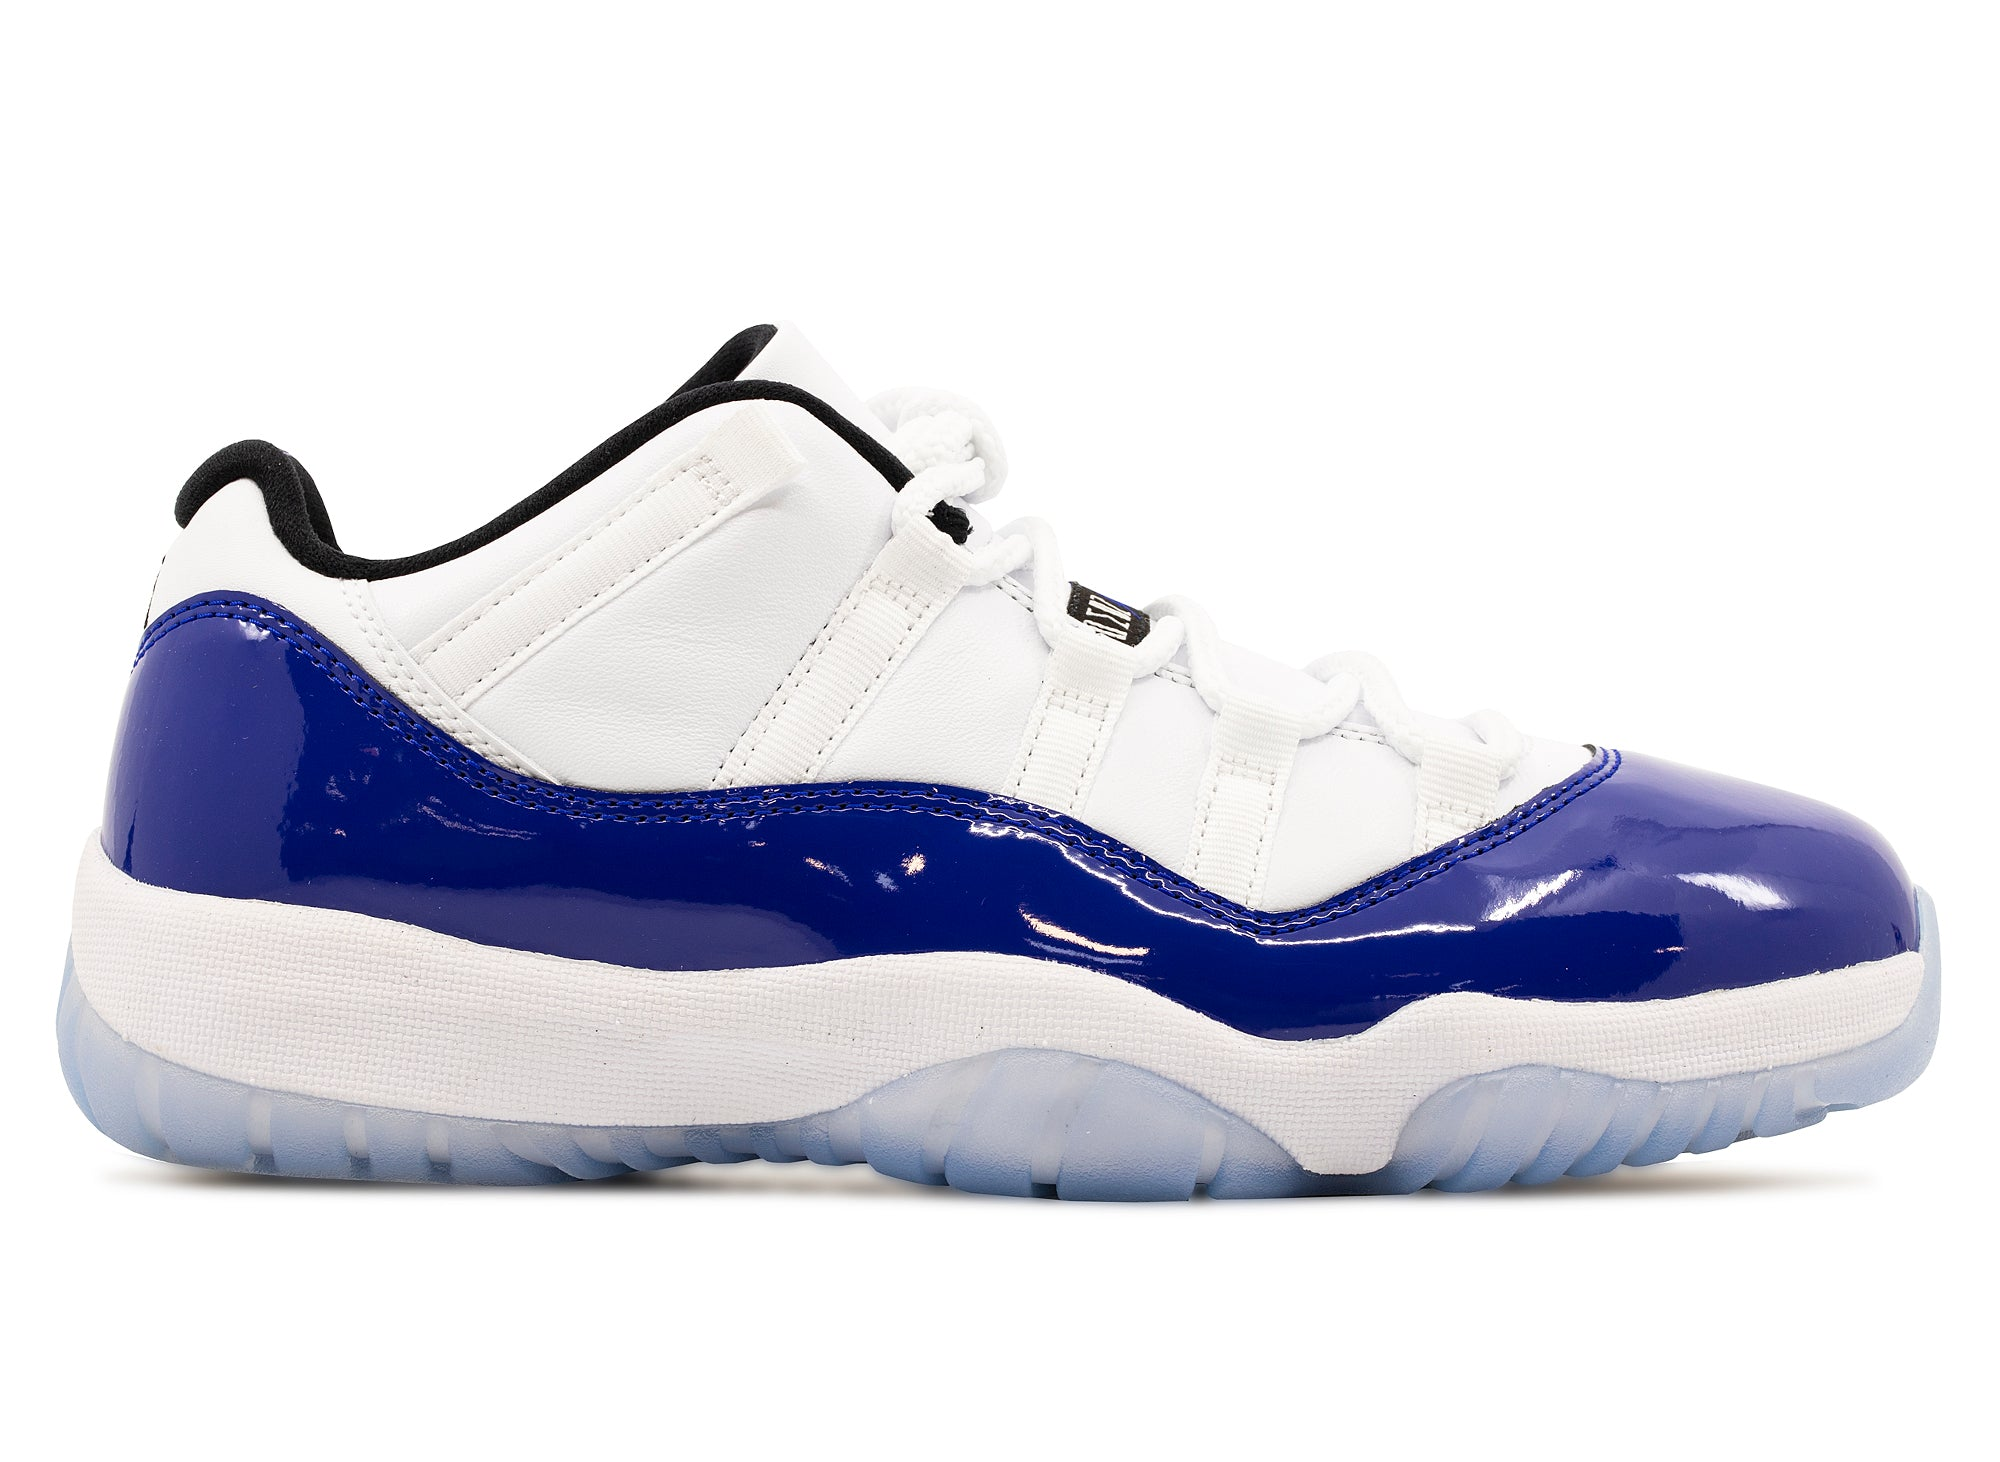 Women's Air Jordan 11 Retro Low